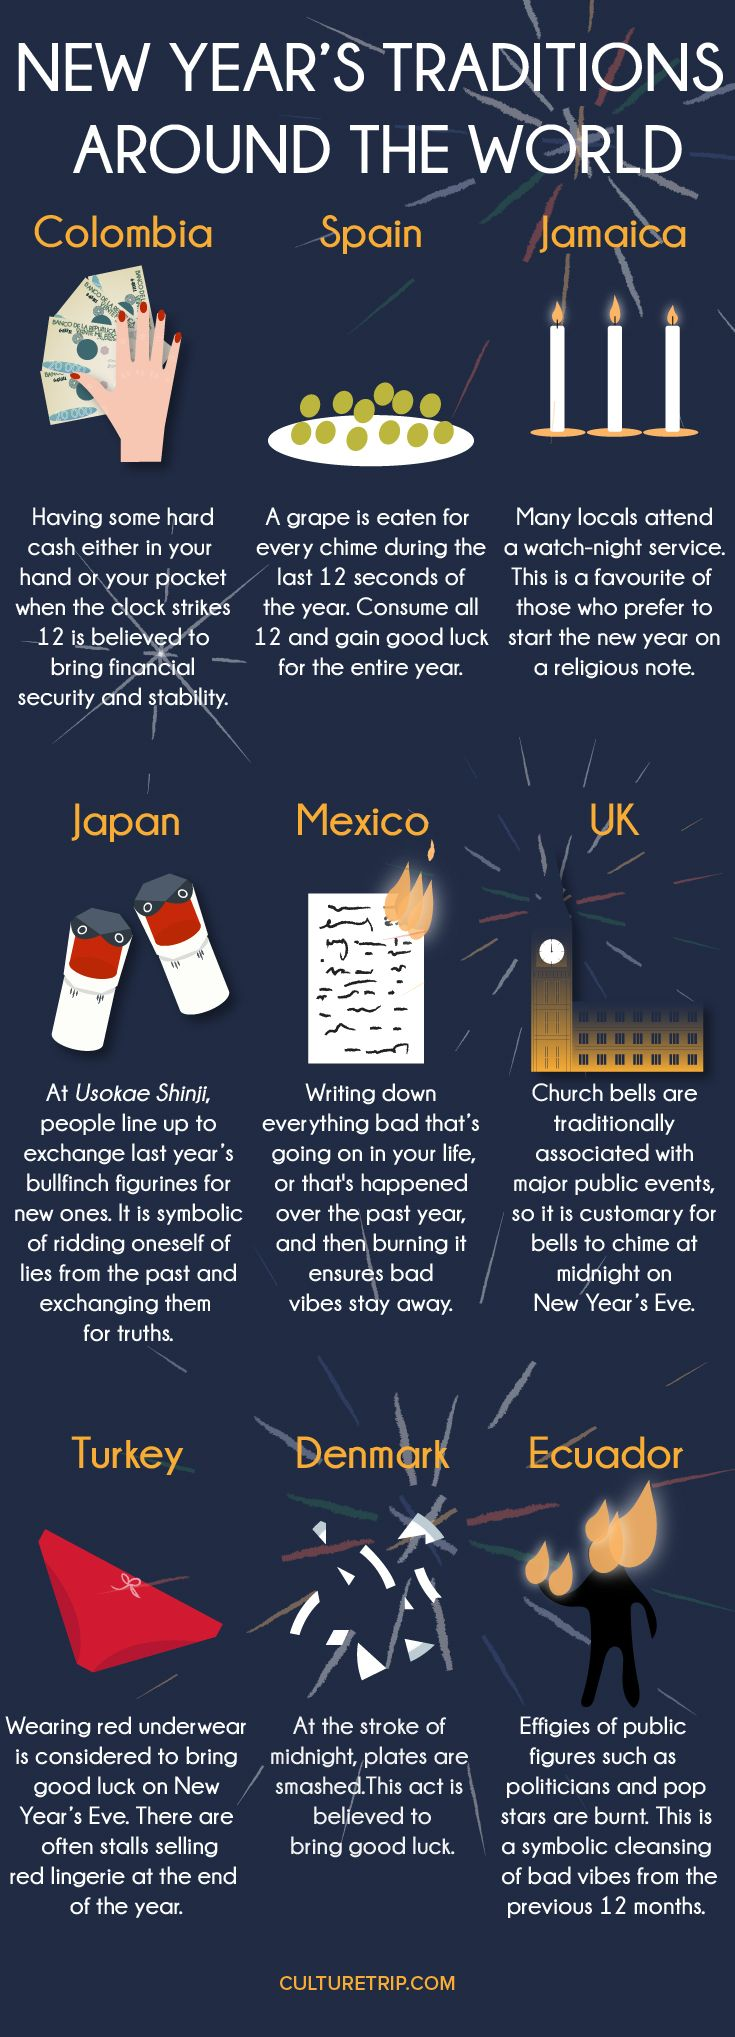 Unique New Year's Eve Traditions From Around the World